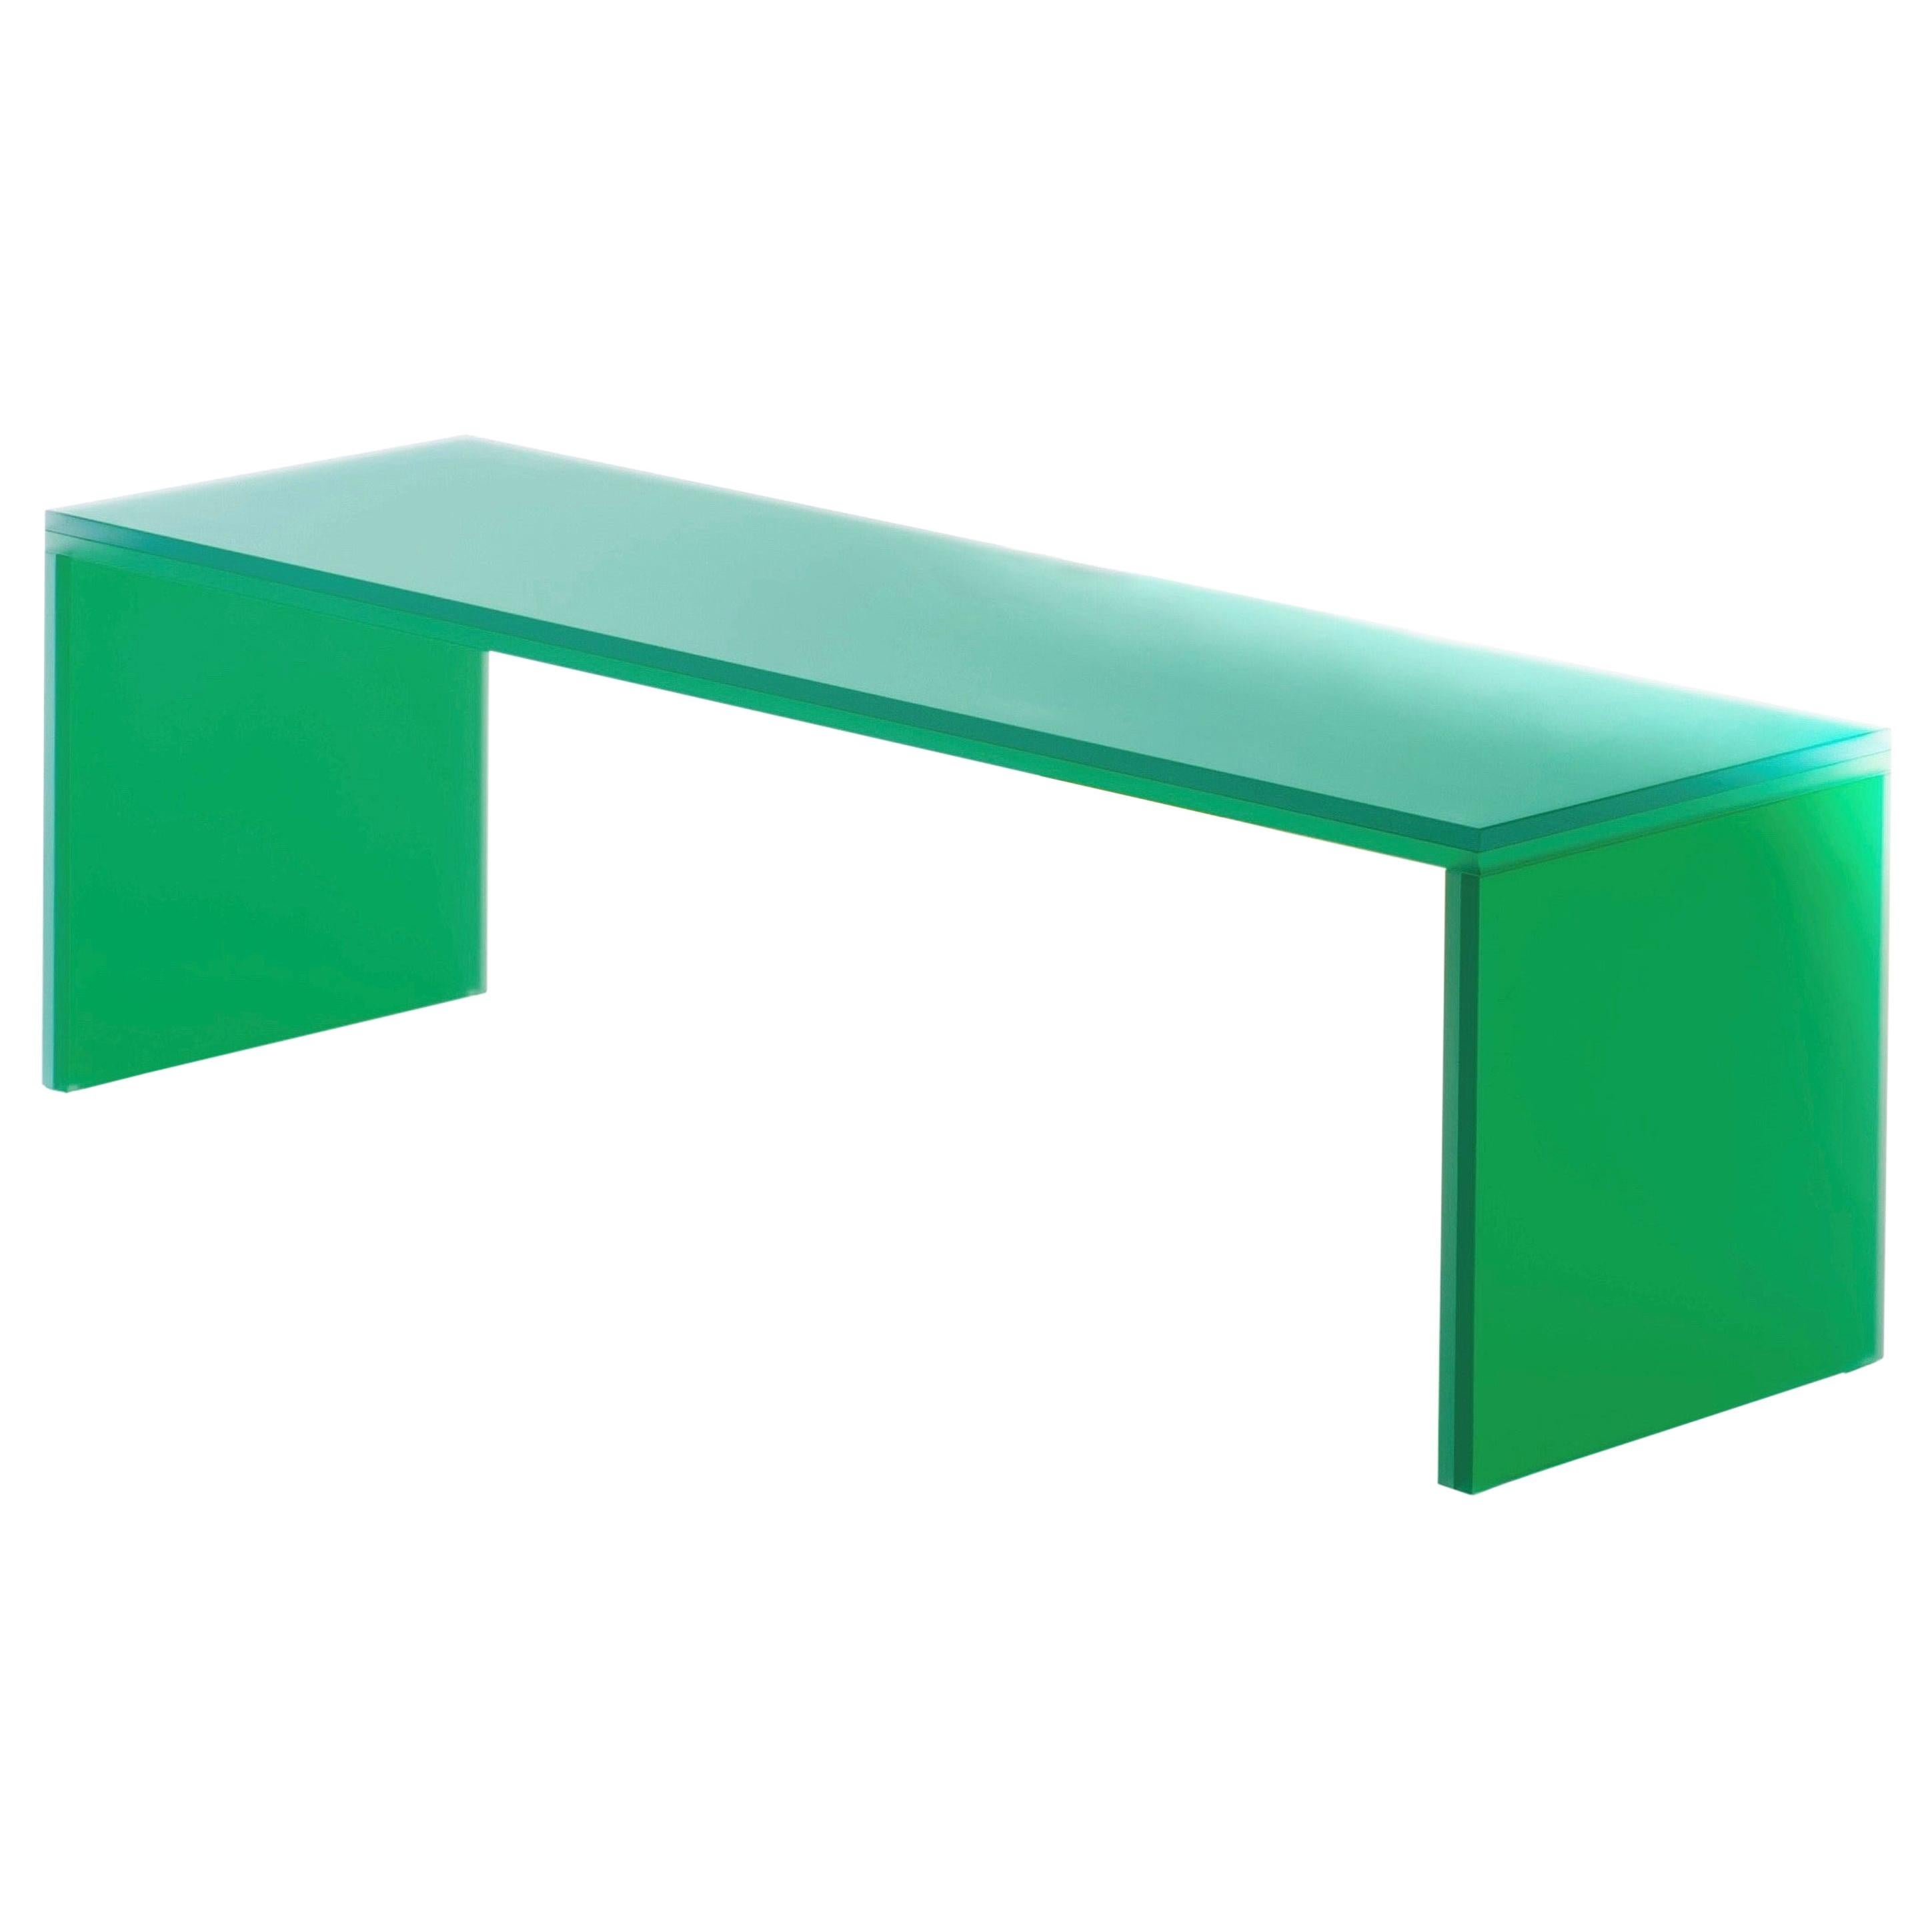 Triennale Large Bench, by Michele De Lucchi from Glas Italia